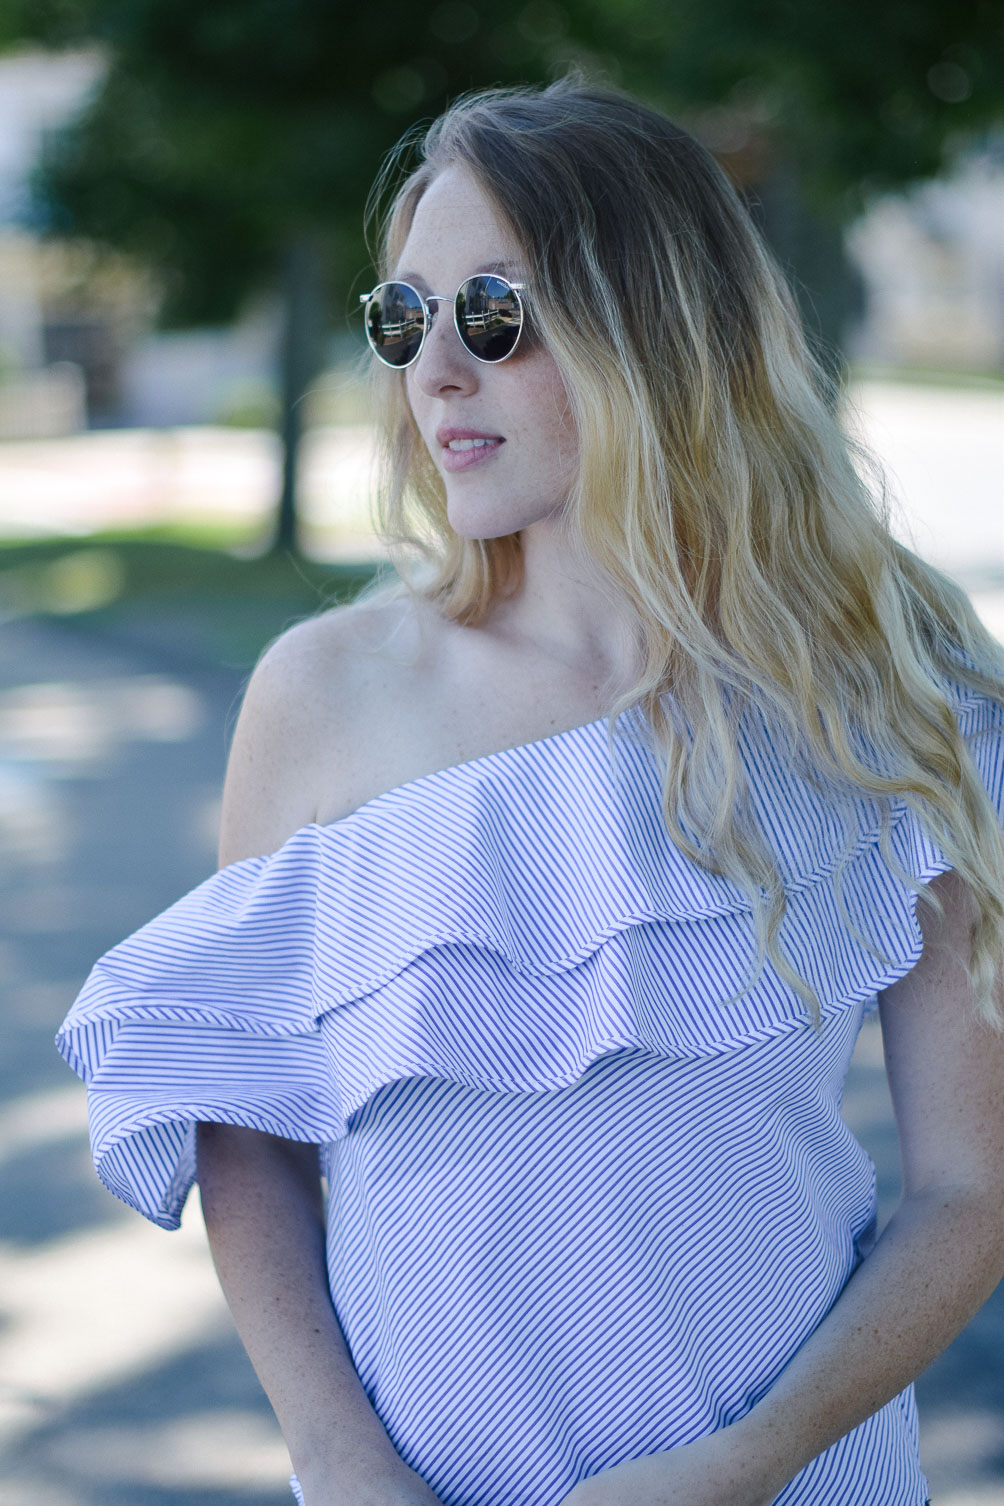 styling a summer outfit with this ruffle one shoulder top and round retro sunglasses